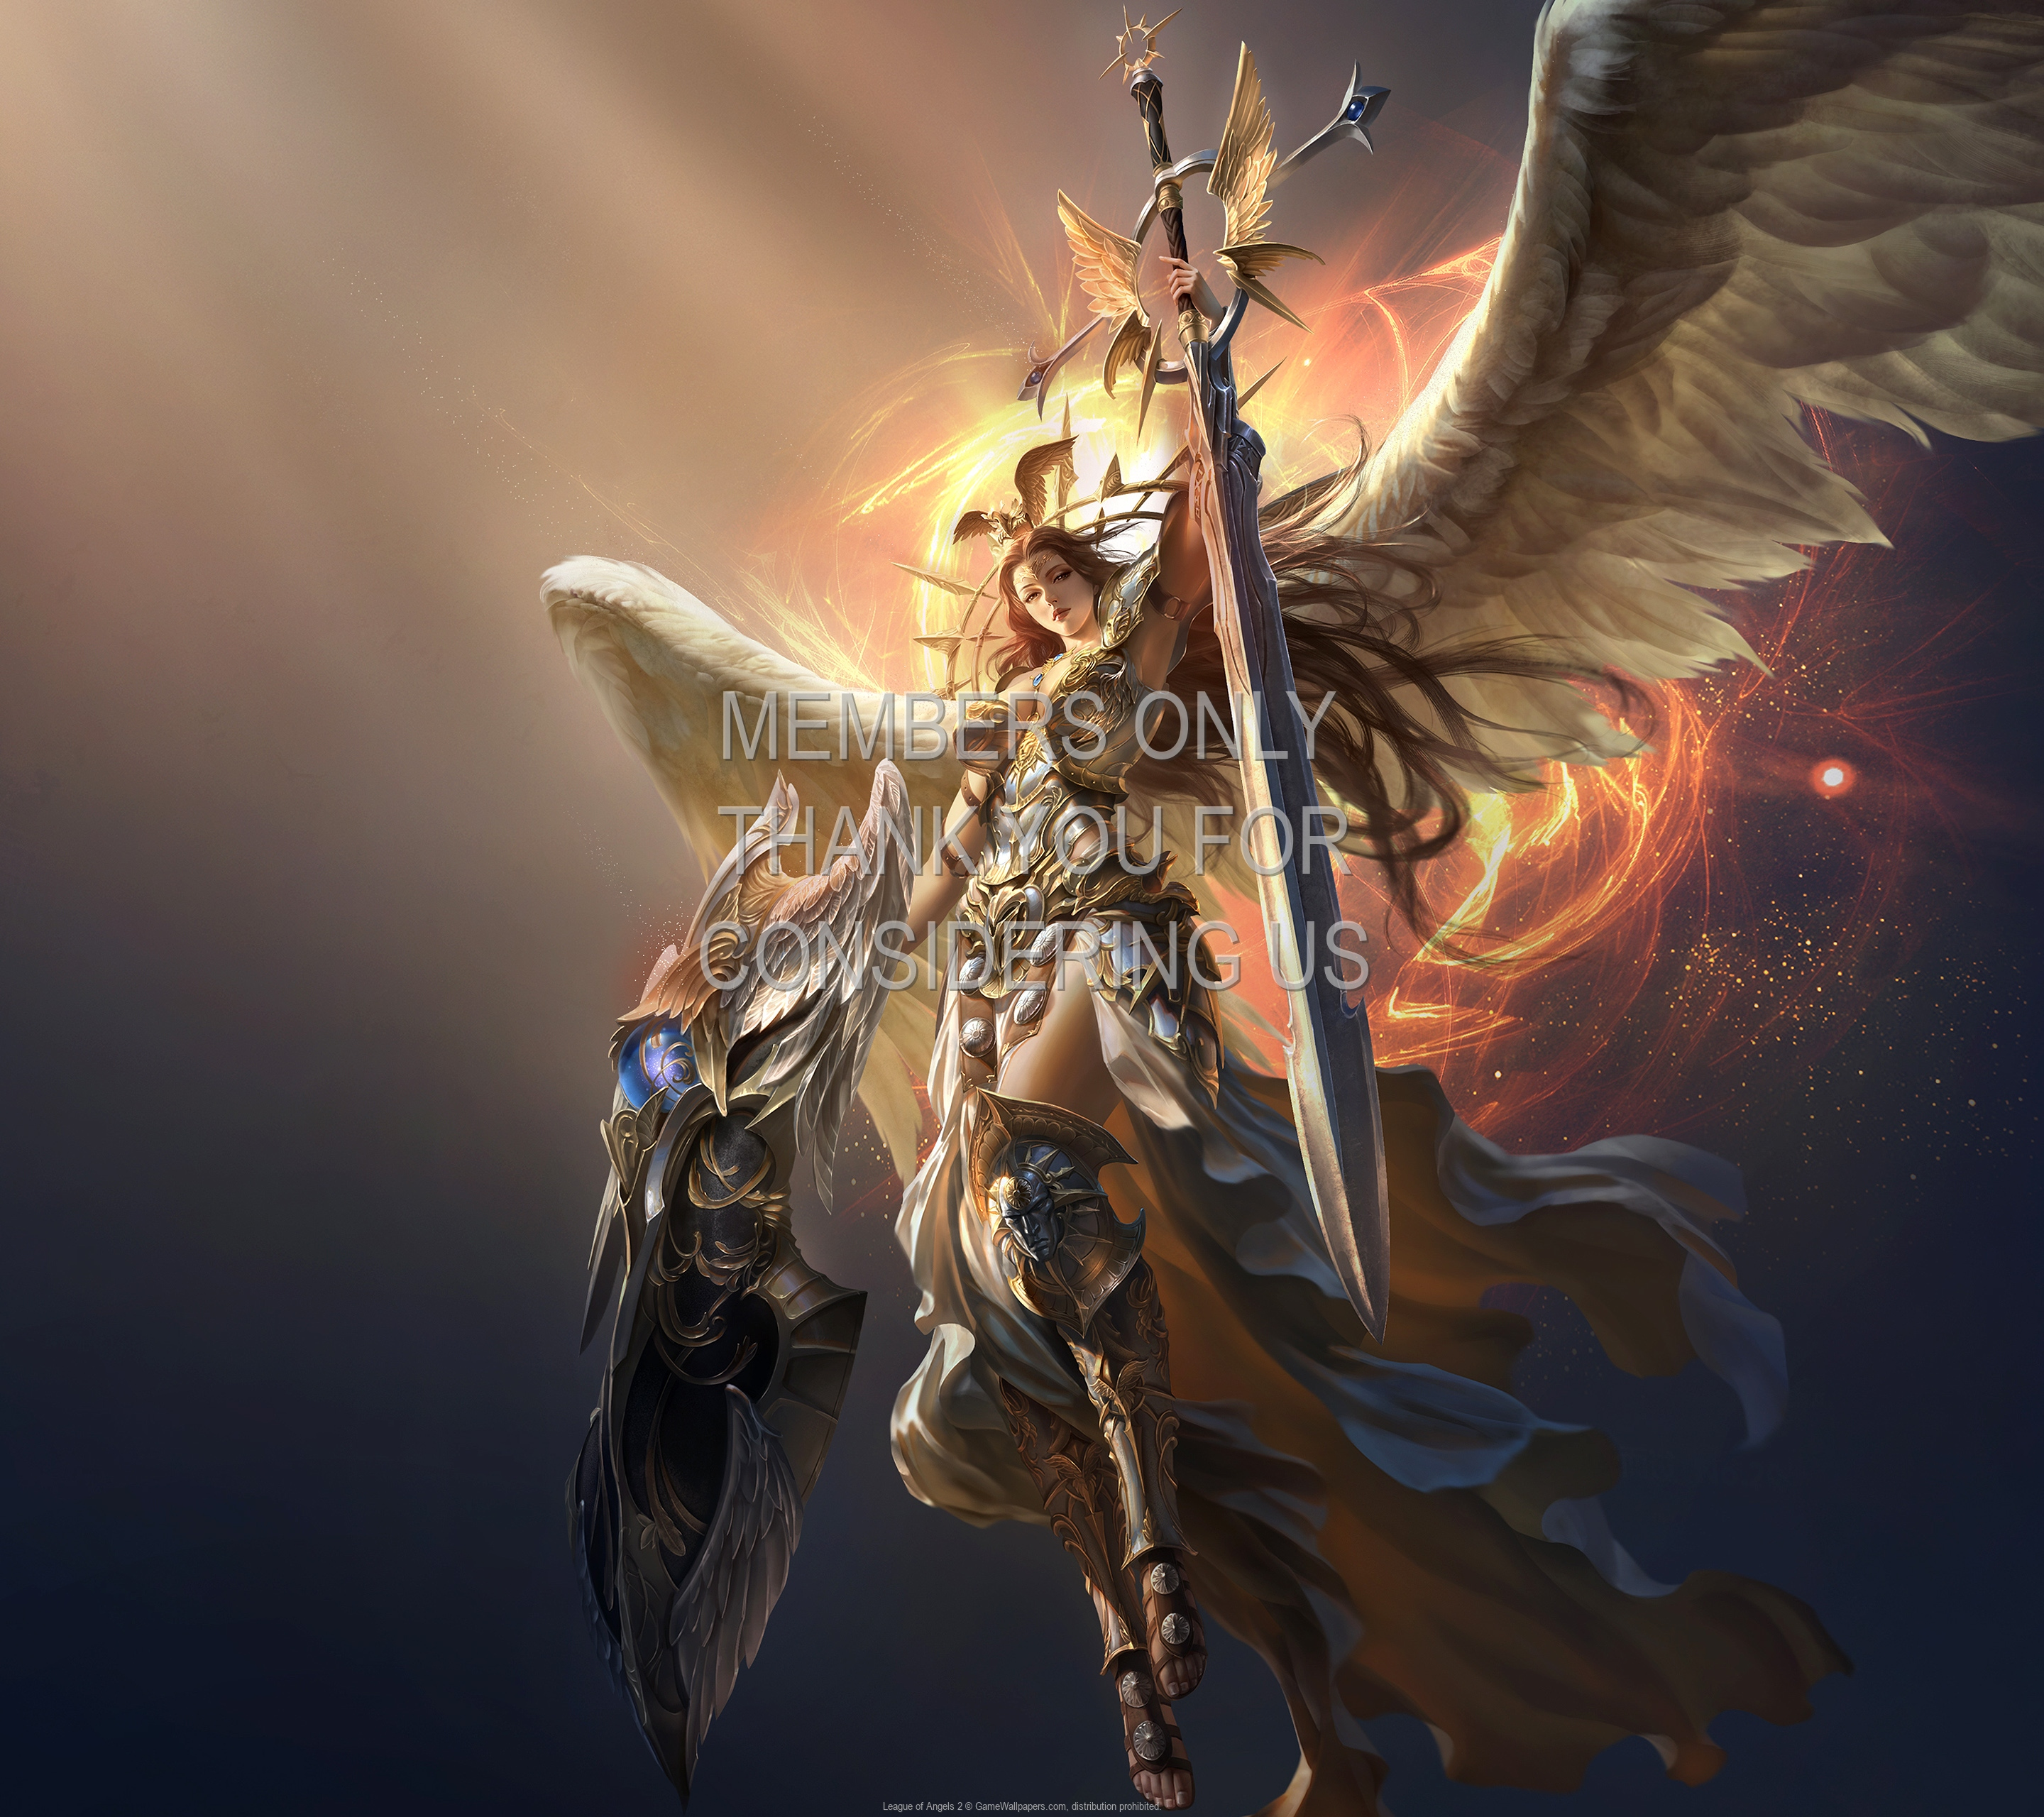 League of Angels 2 1920x1080 Mobile wallpaper or background 03